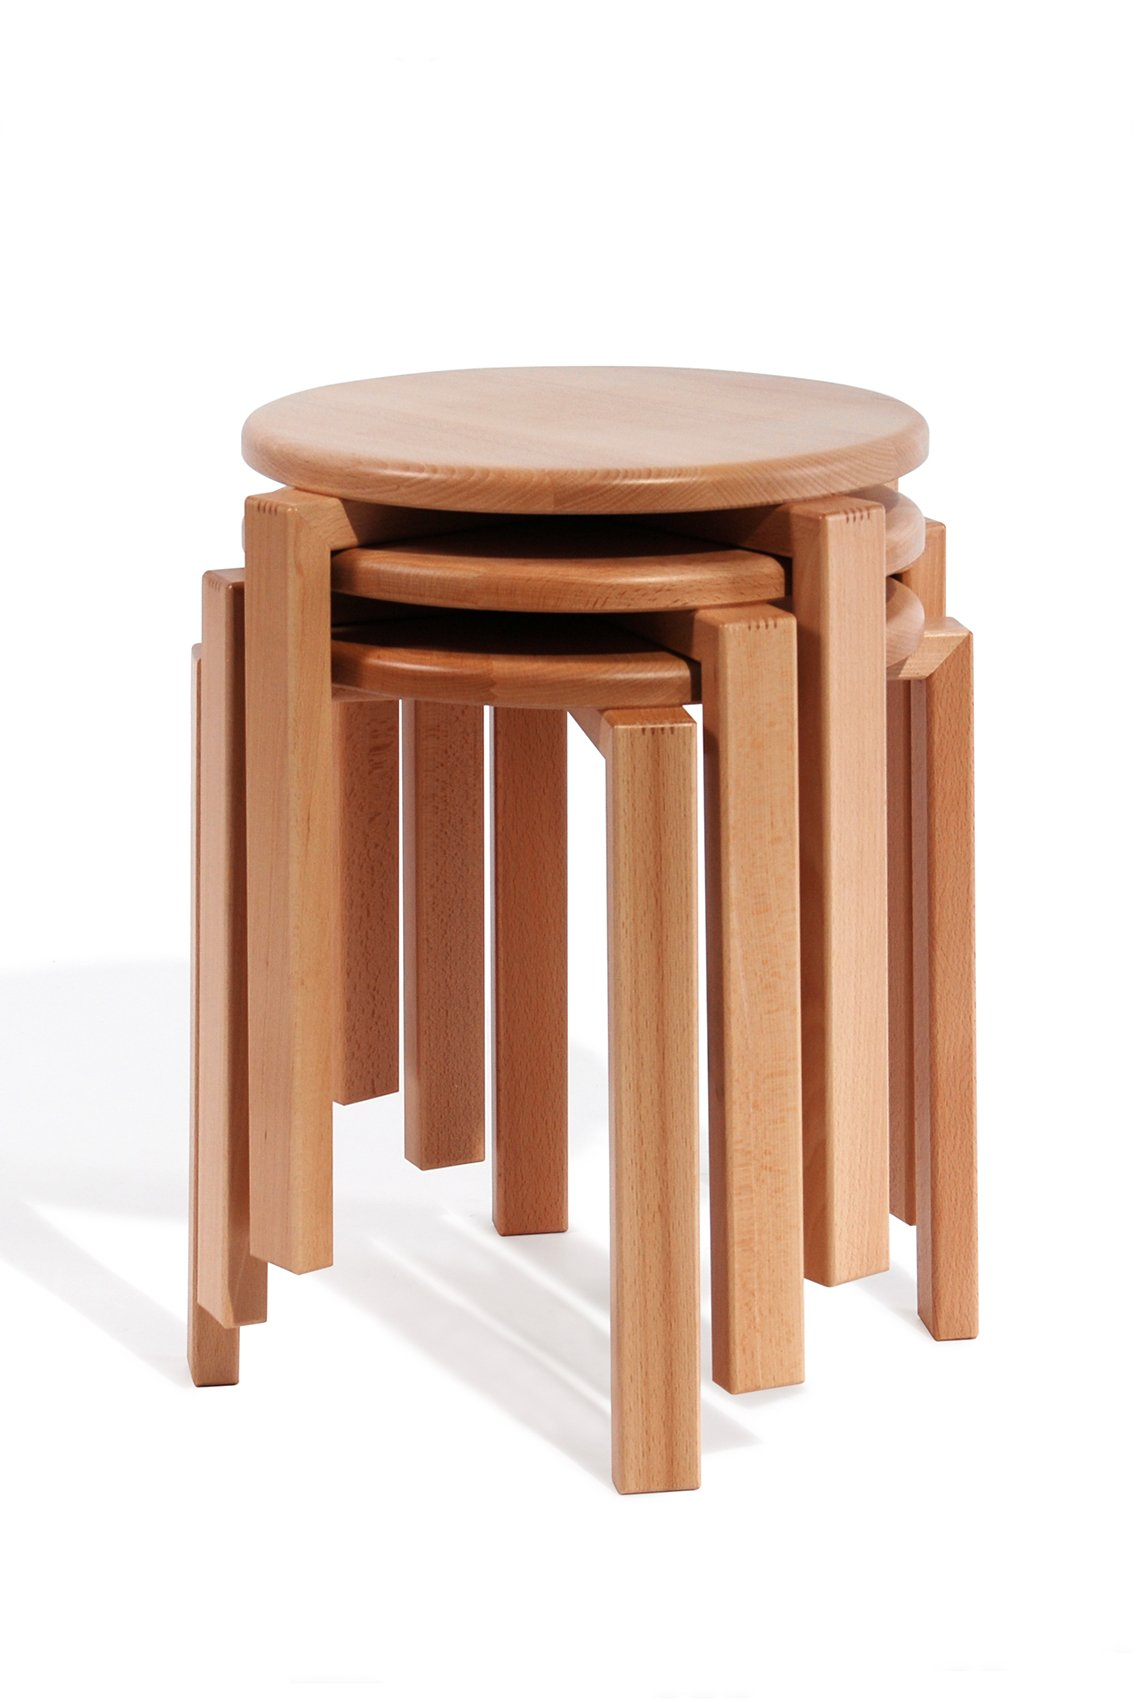 Stool model 4024 th ni st hle barhocker tische b nke for Barhocker 3d model